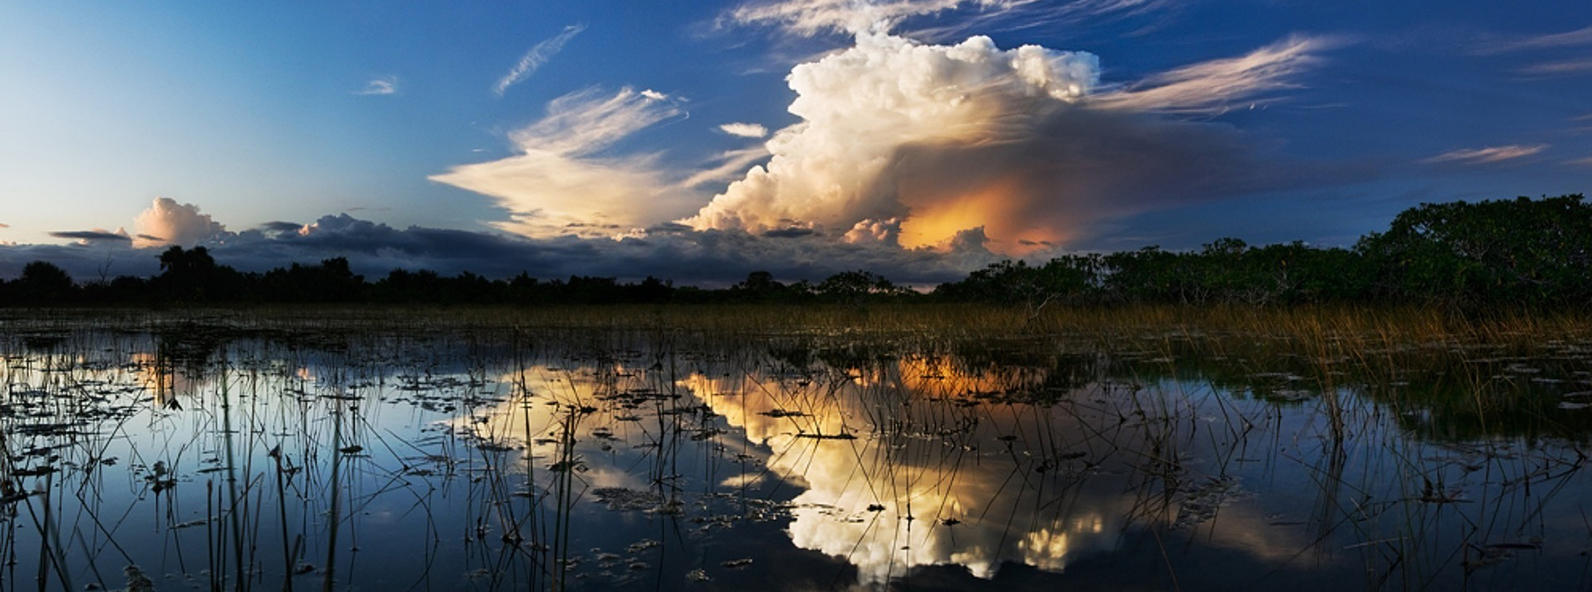 Storm clouds over the Everglades.